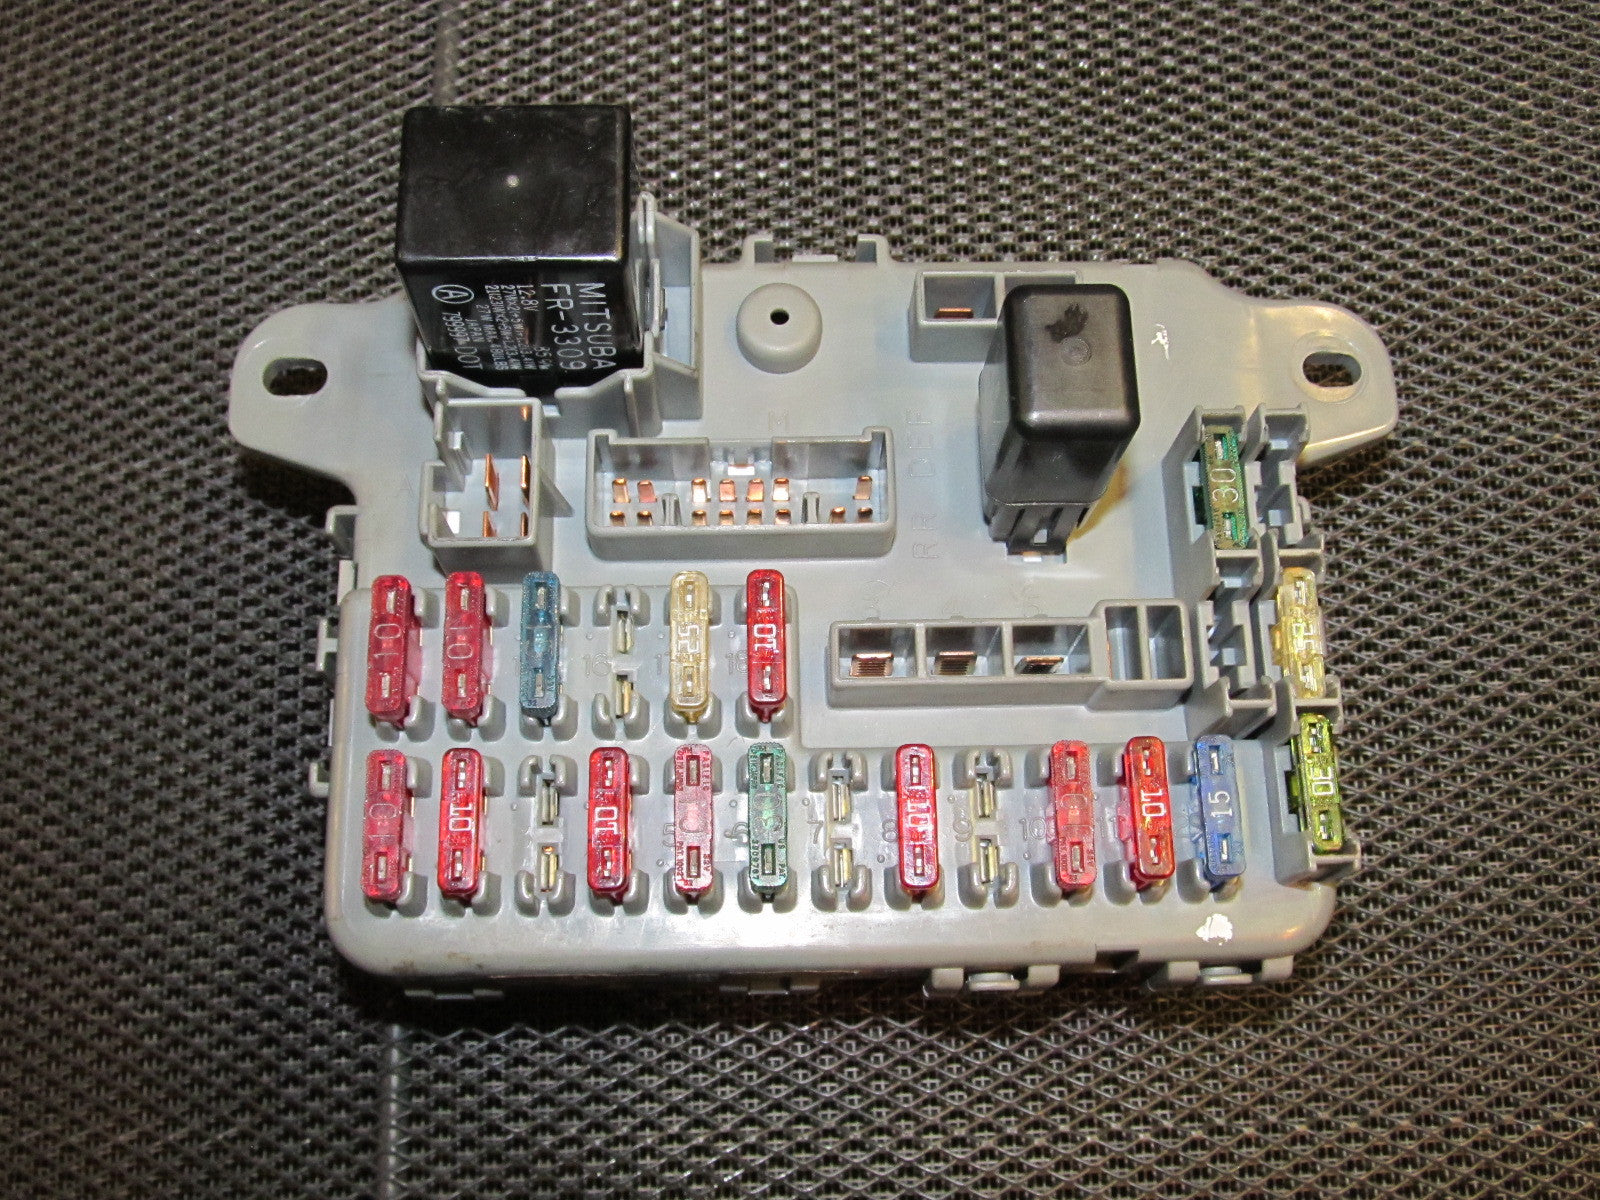 IMG_1741?v=1442280626 88 89 honda crx oem d15b2 interior fuse box autopartone com on 1989 civic d15b2 fuse box map